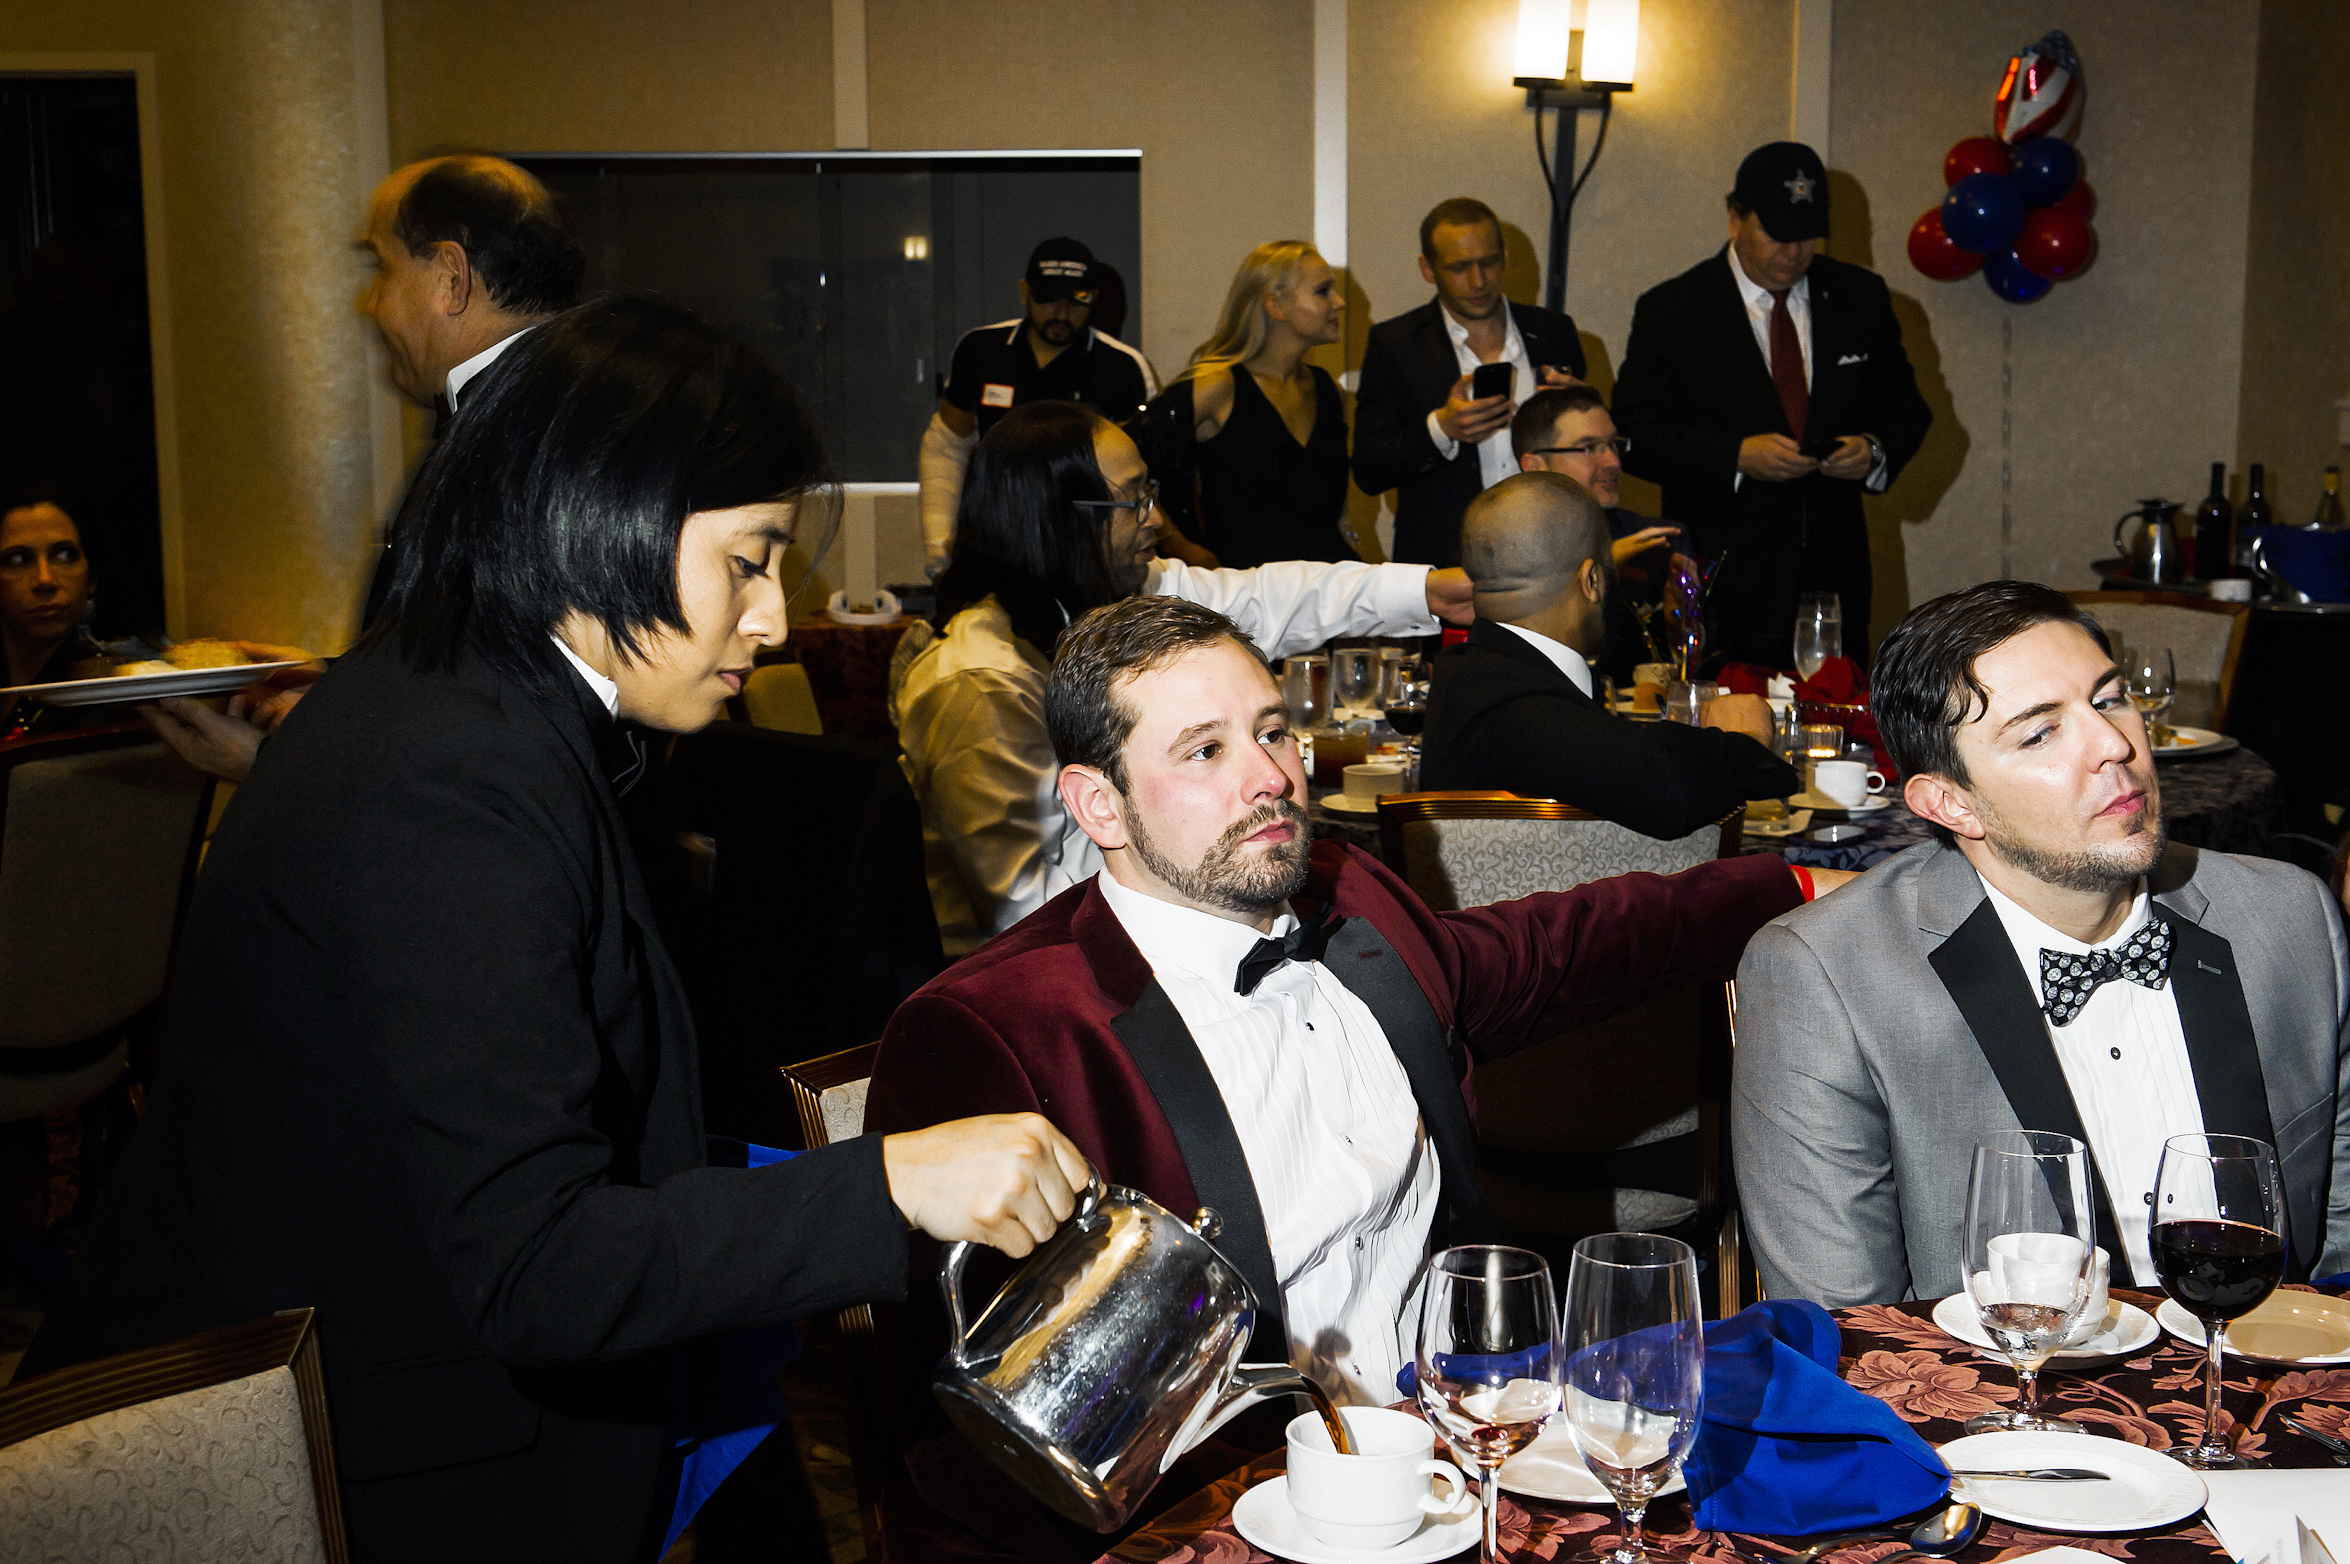 Gays for Trump hosted the Inaugural Deploraball at the Bolger Center in Potomac, Maryland on January 20, 2017.